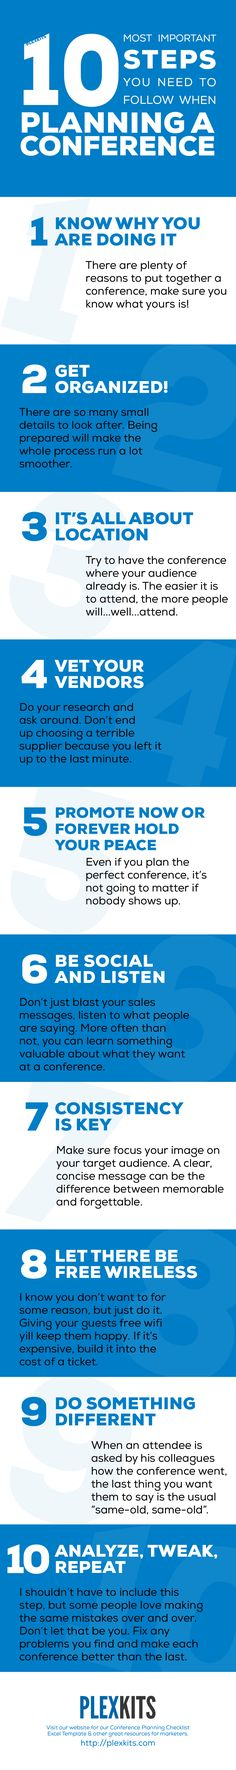 10 Most Important Steps You Need to Follow When Planning a Conference Infographic